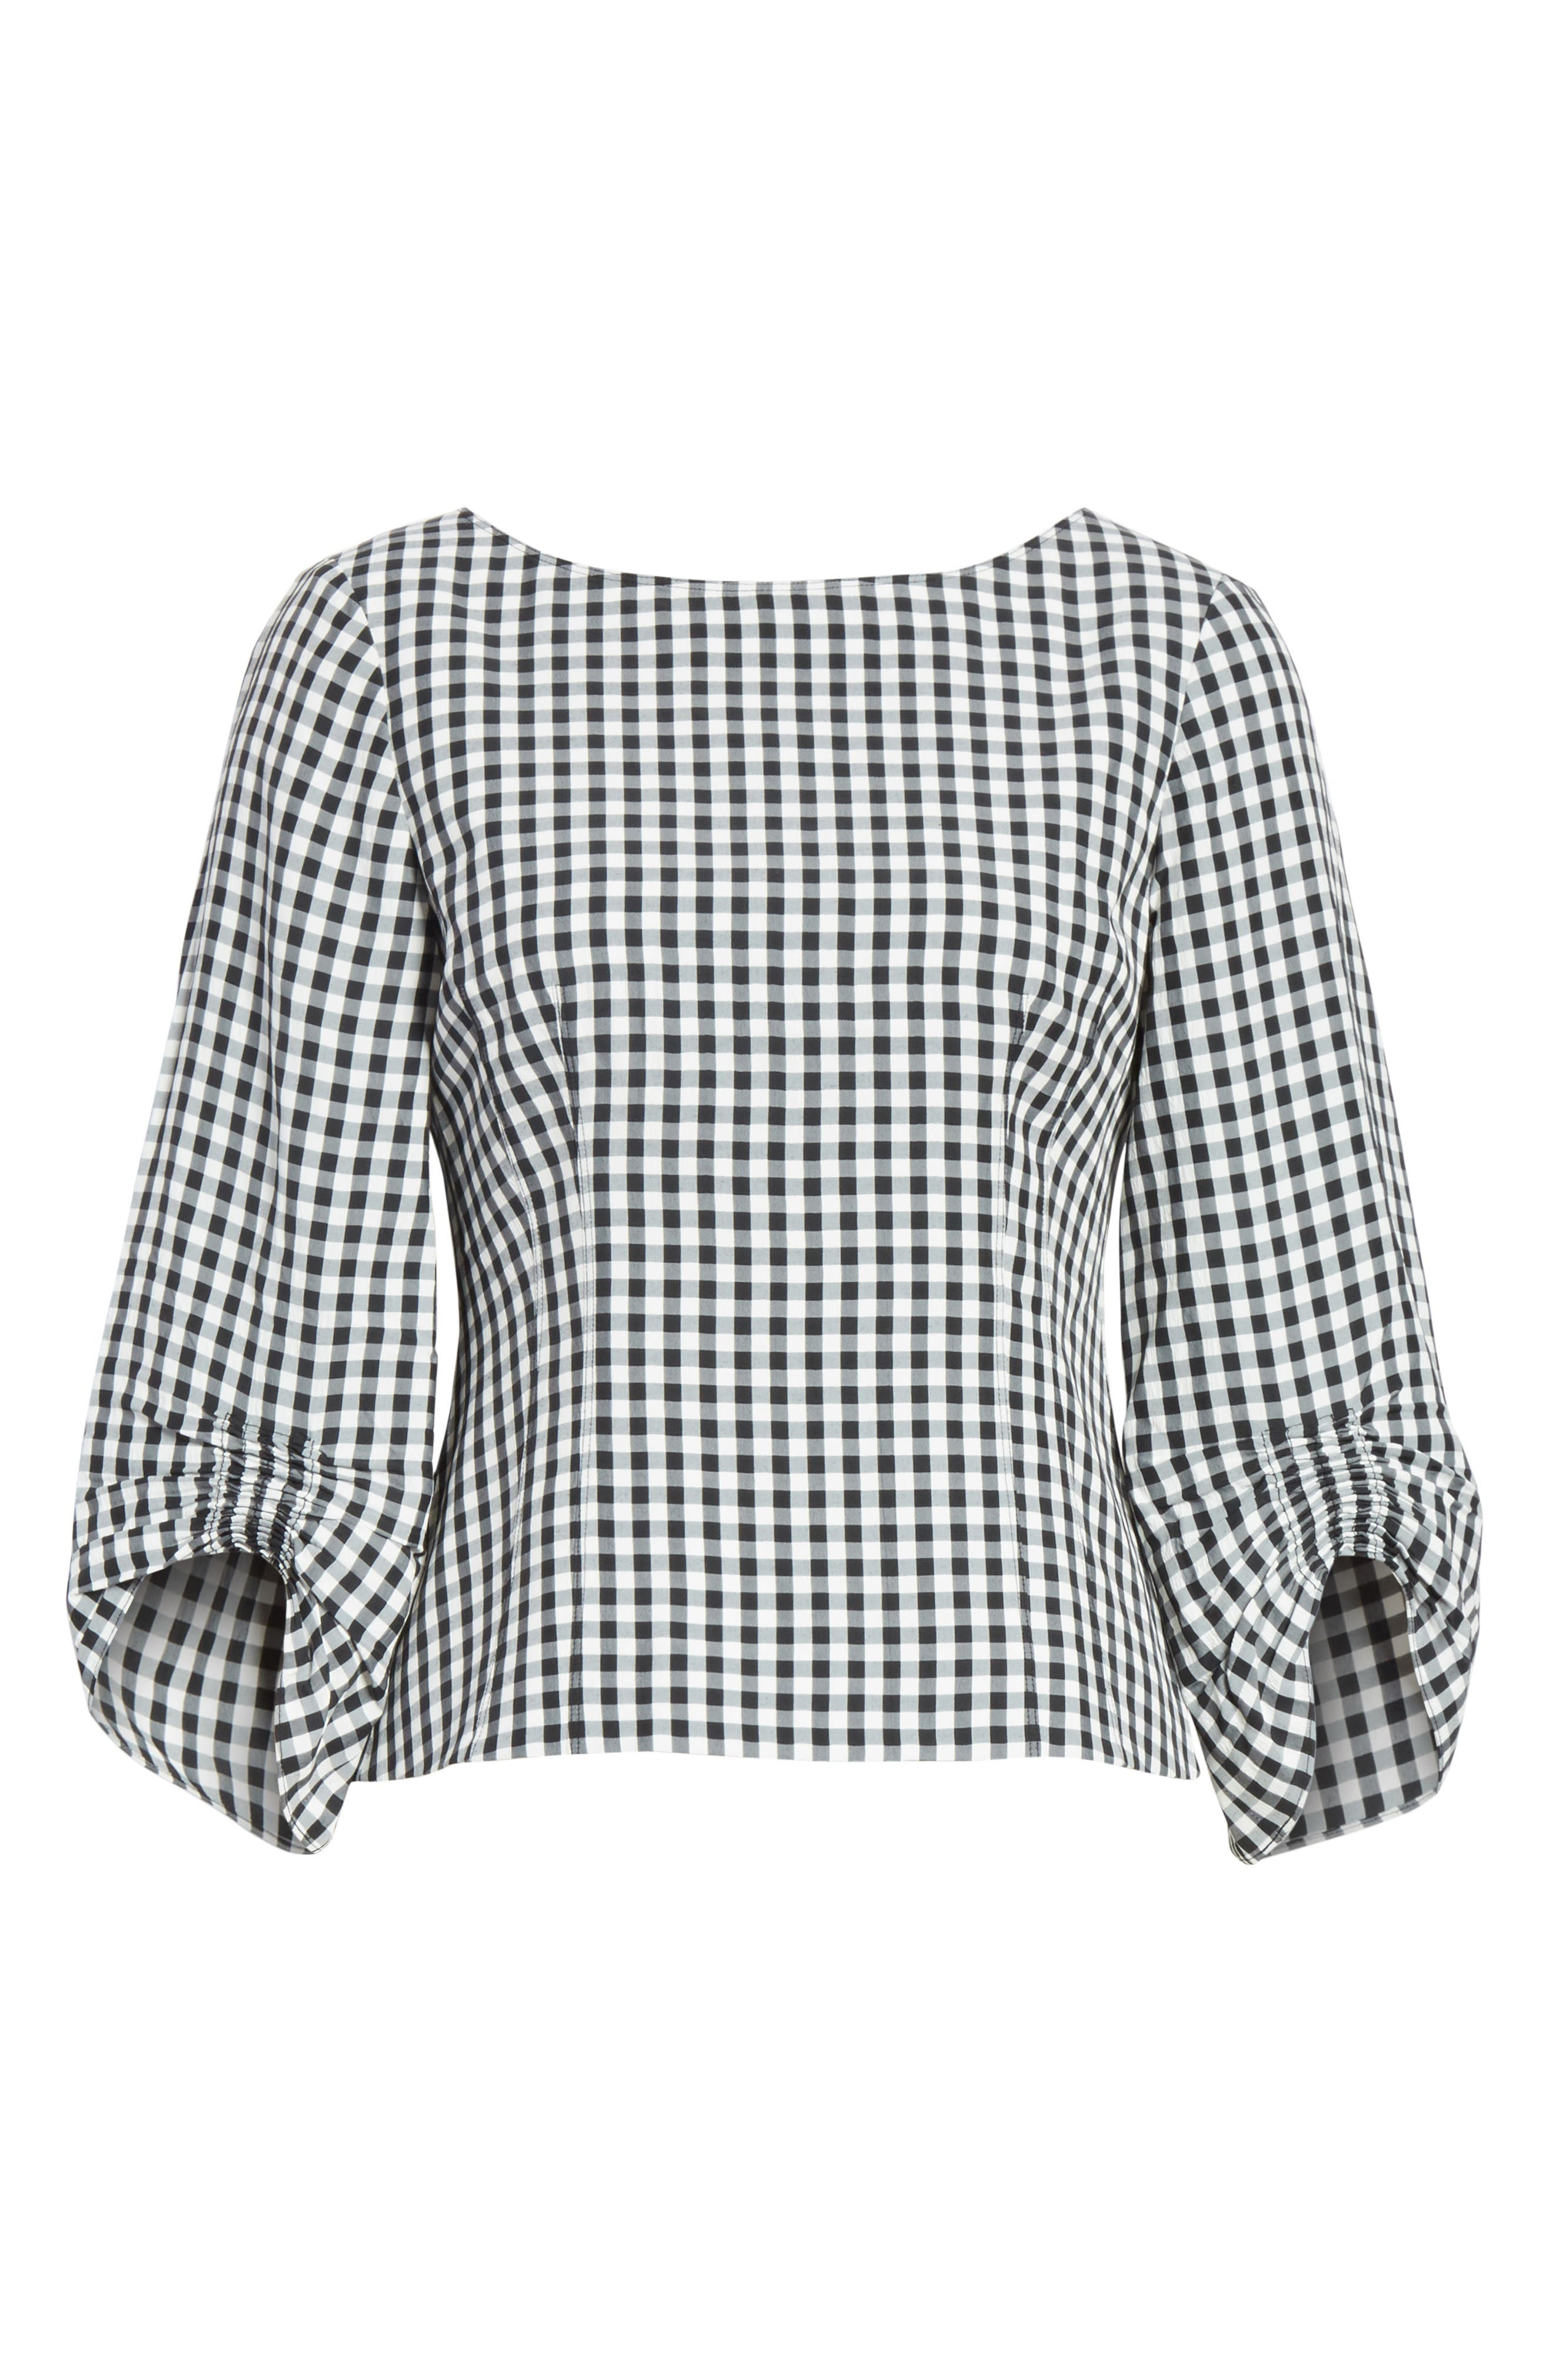 Gingham Corset Peplum Blouse,                             Alternate thumbnail 6, color,                             006